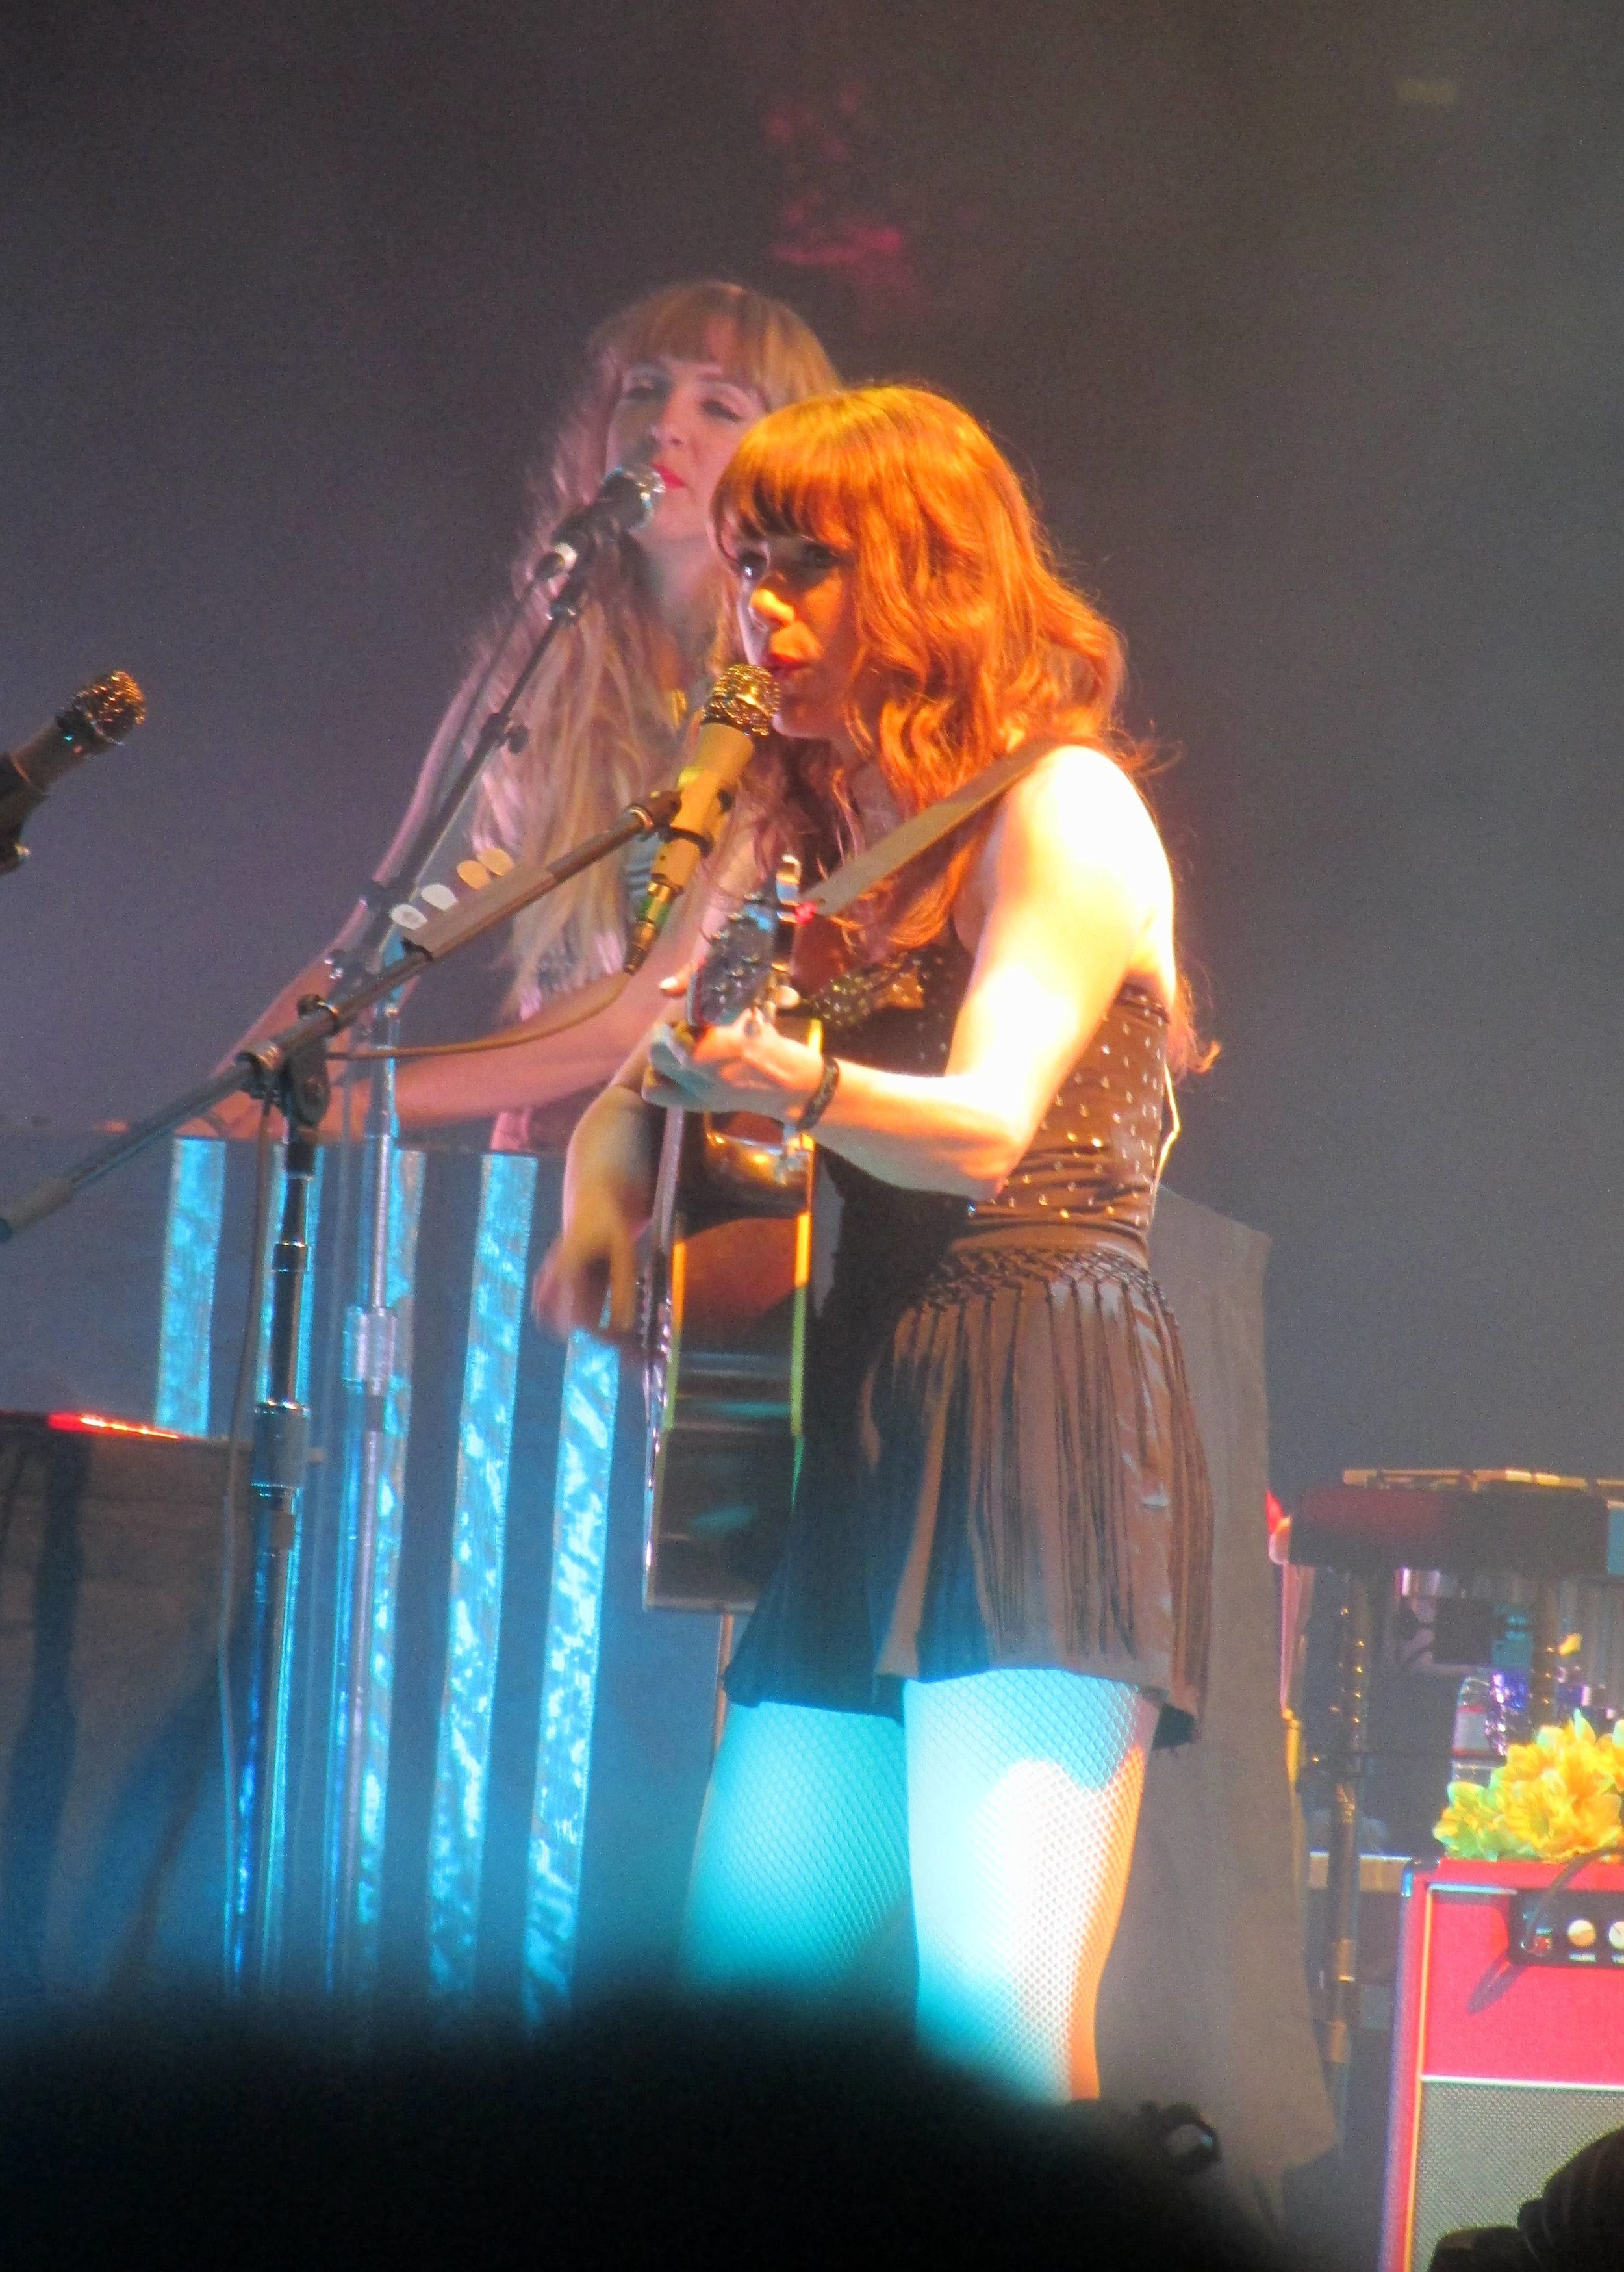 5 - The gorgeous Jenny Lewis, backing vocalist and multi-instrumentalist of The Postal Service.JPG